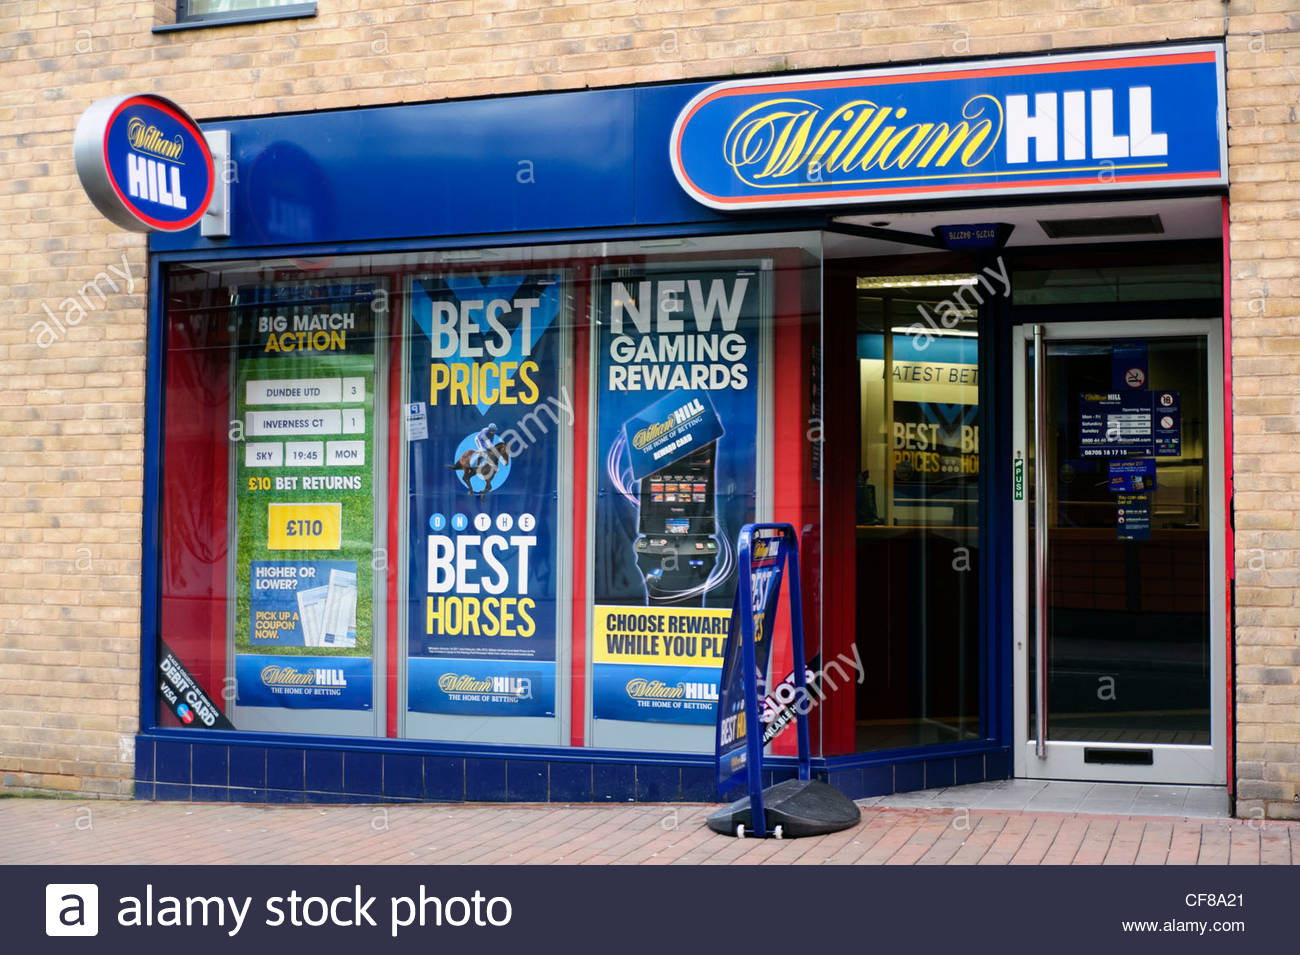 William Hill bookies shop Birmingham, UK. - Stock Image